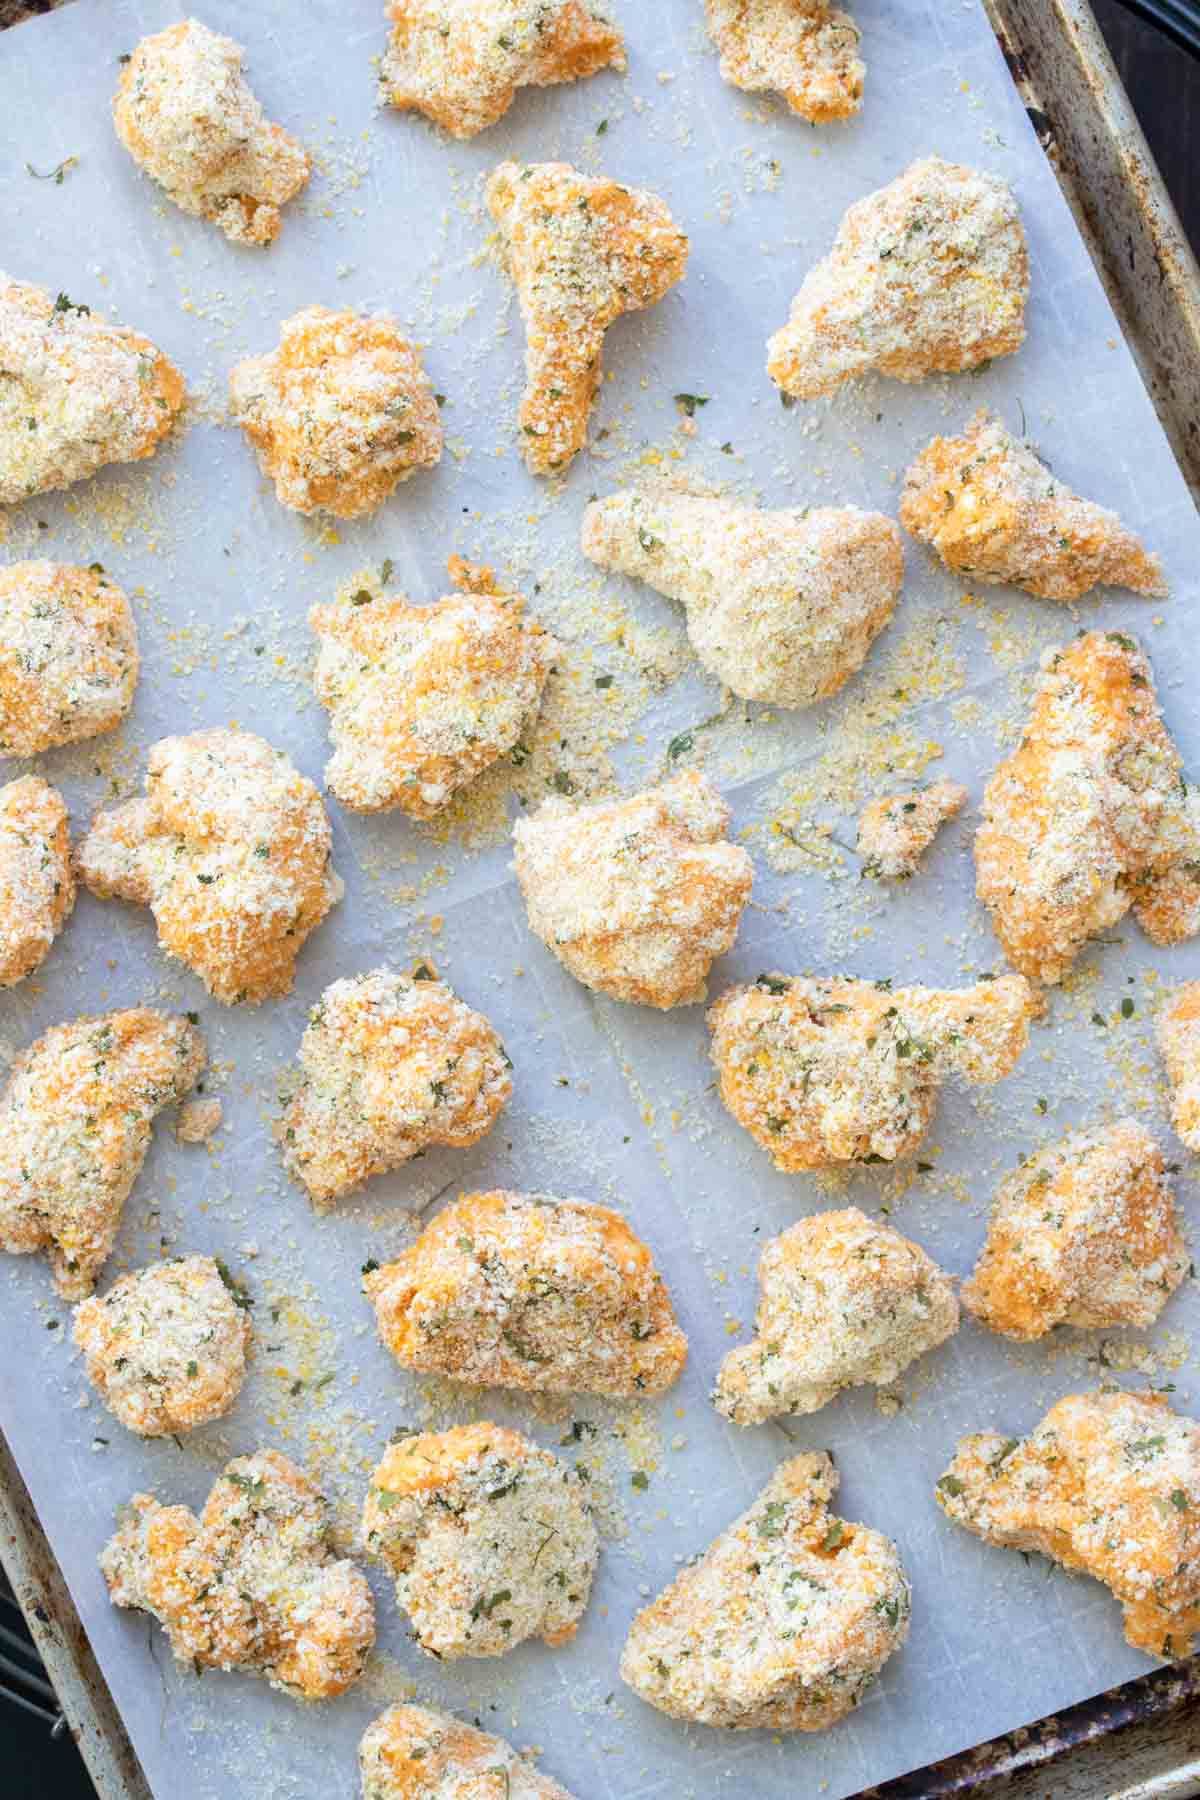 Breadcrumb coated cauliflower pieces on a baking sheet